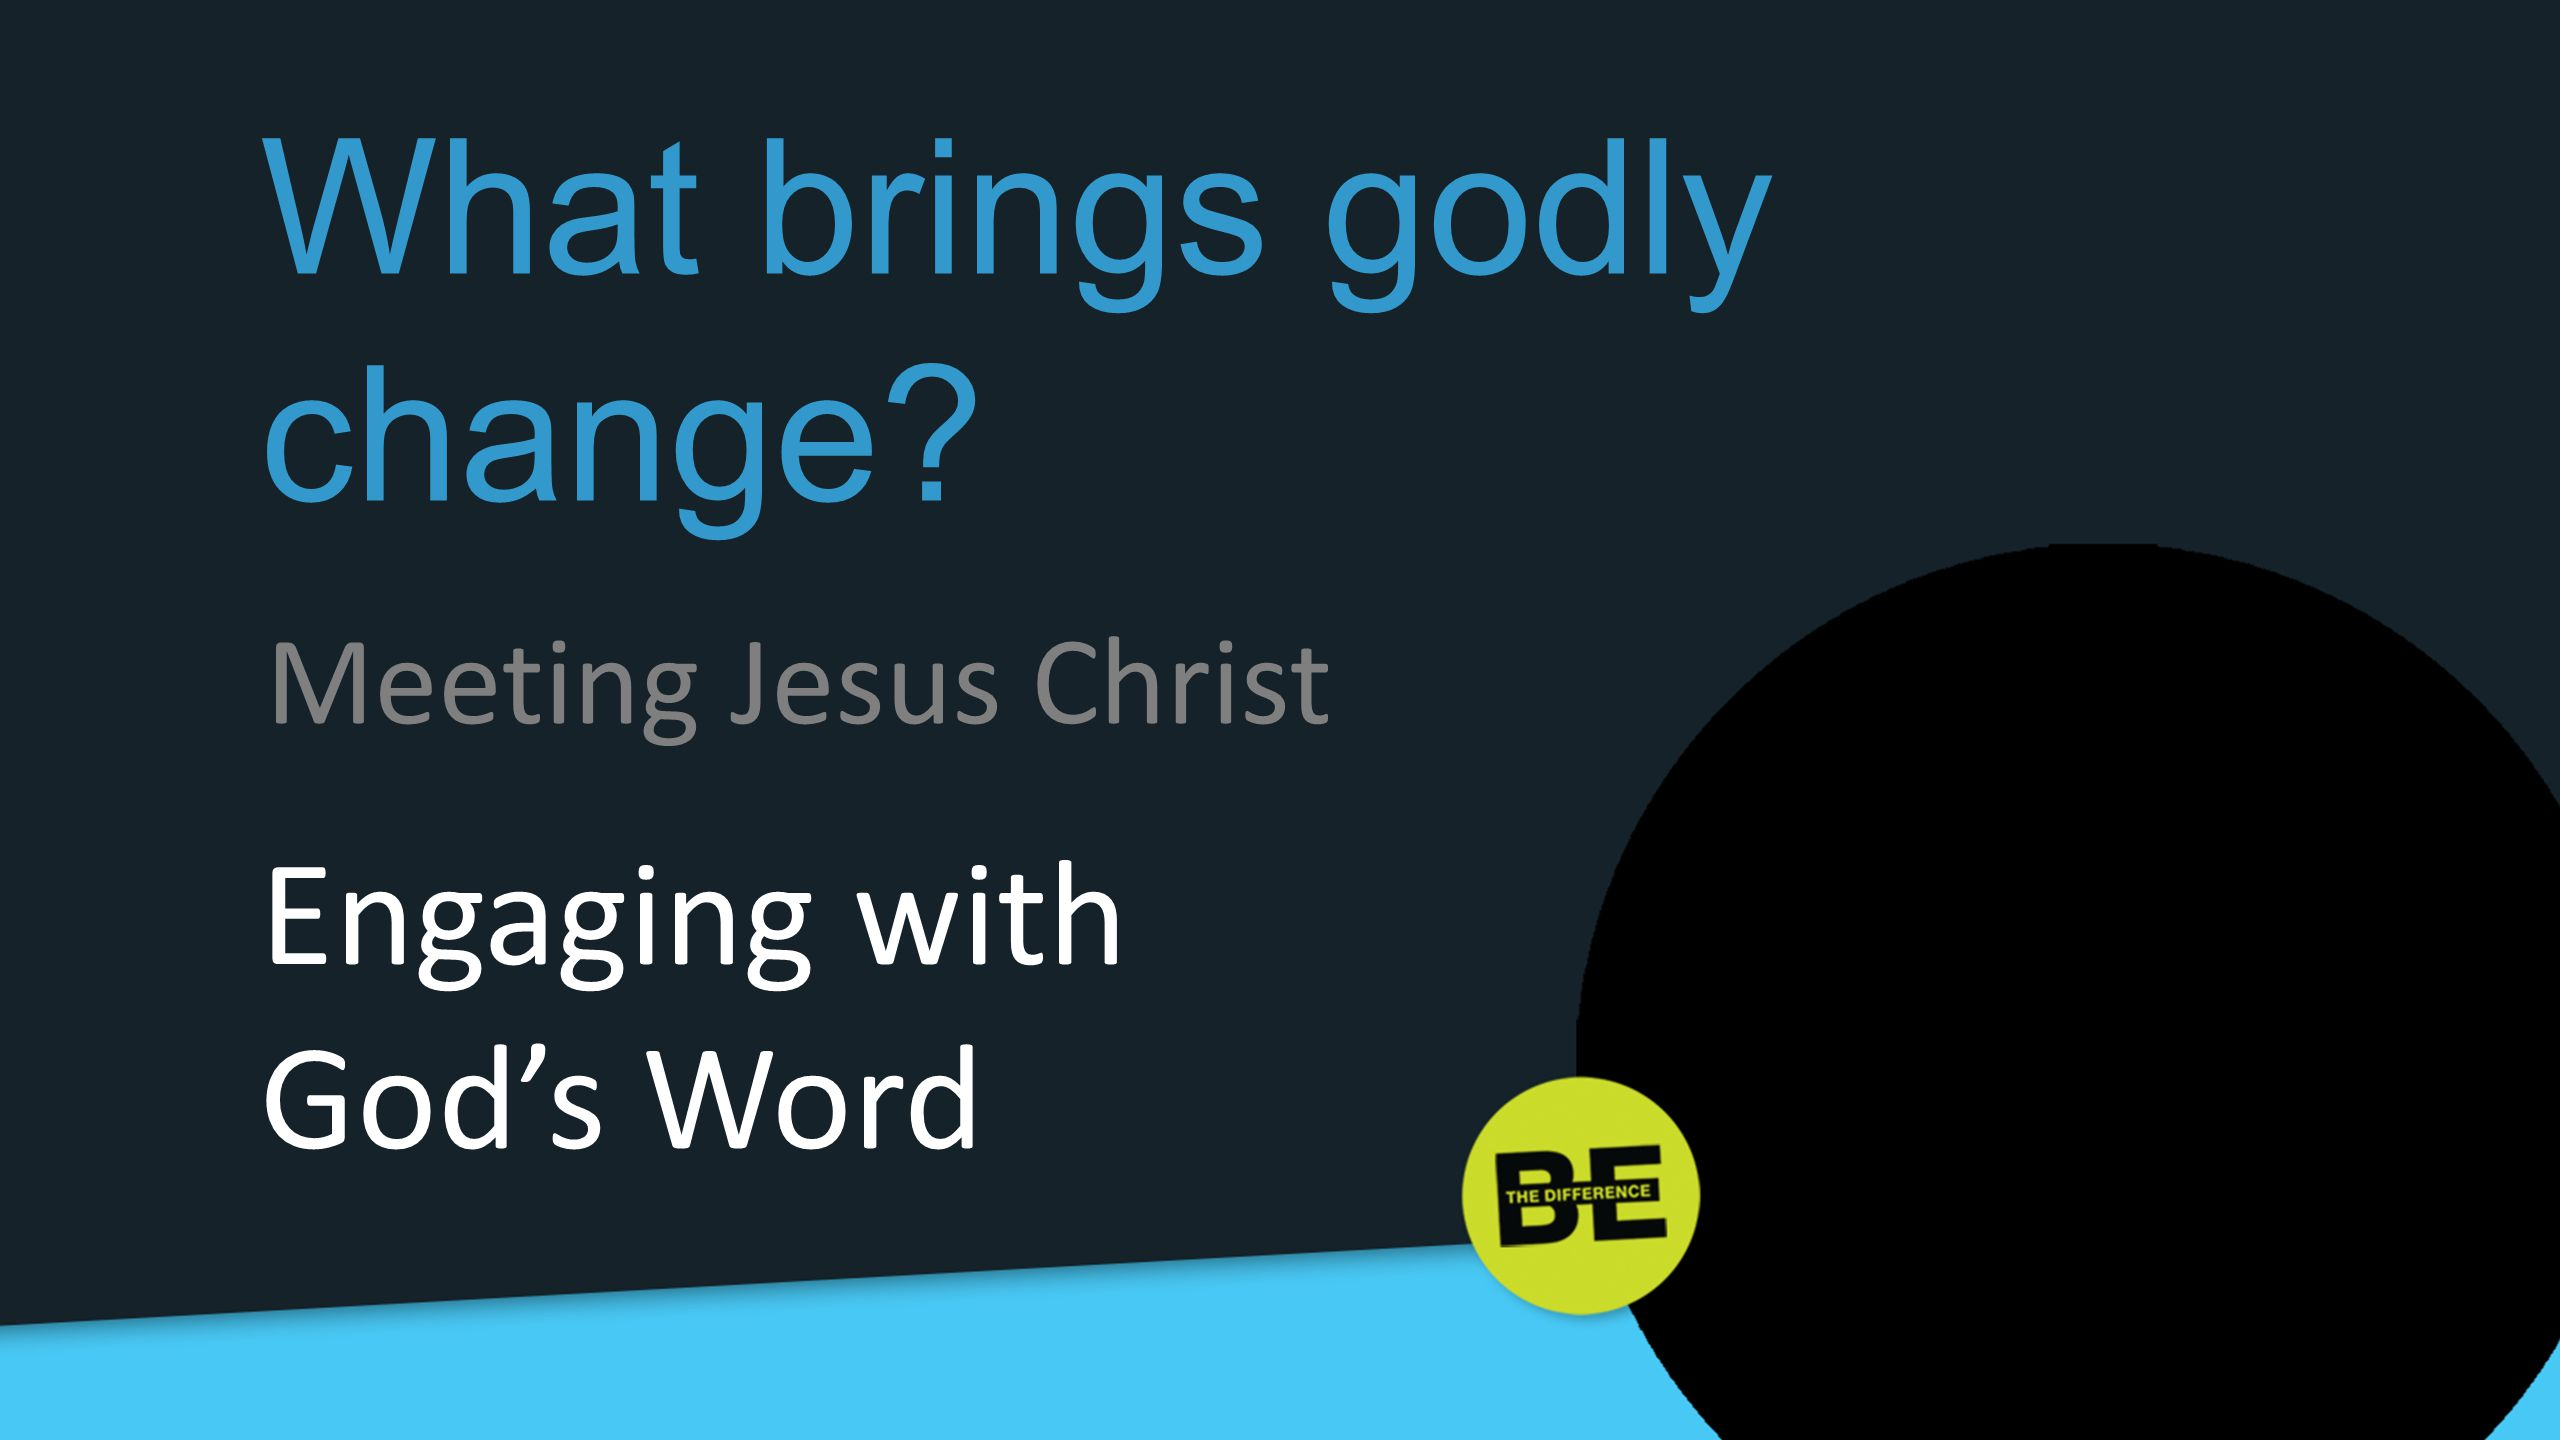 What brings godly change